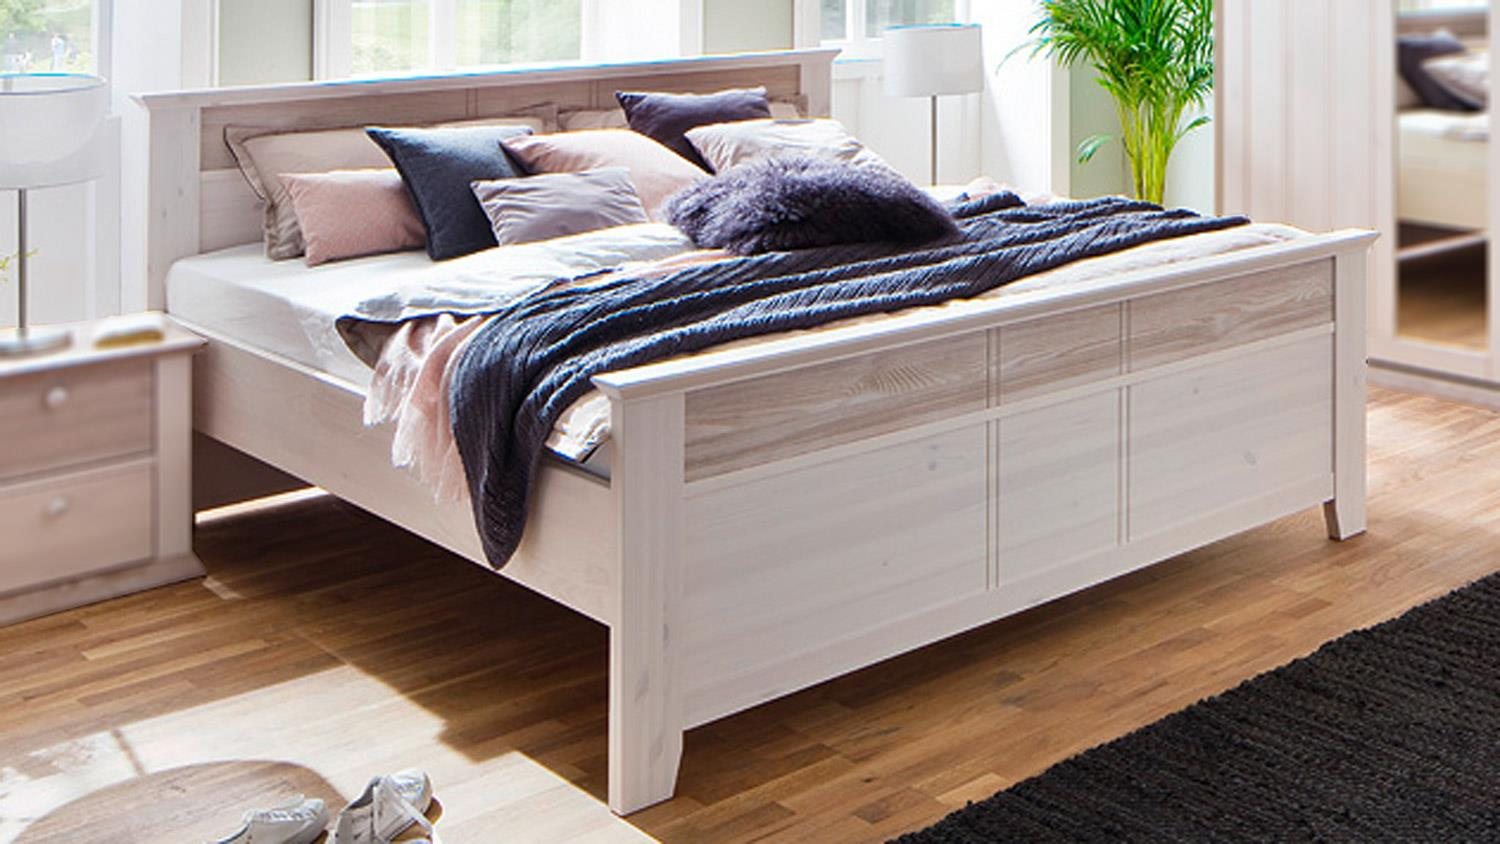 bett g teborg doppelbett kiefer massiv wei milan 180x200cm. Black Bedroom Furniture Sets. Home Design Ideas